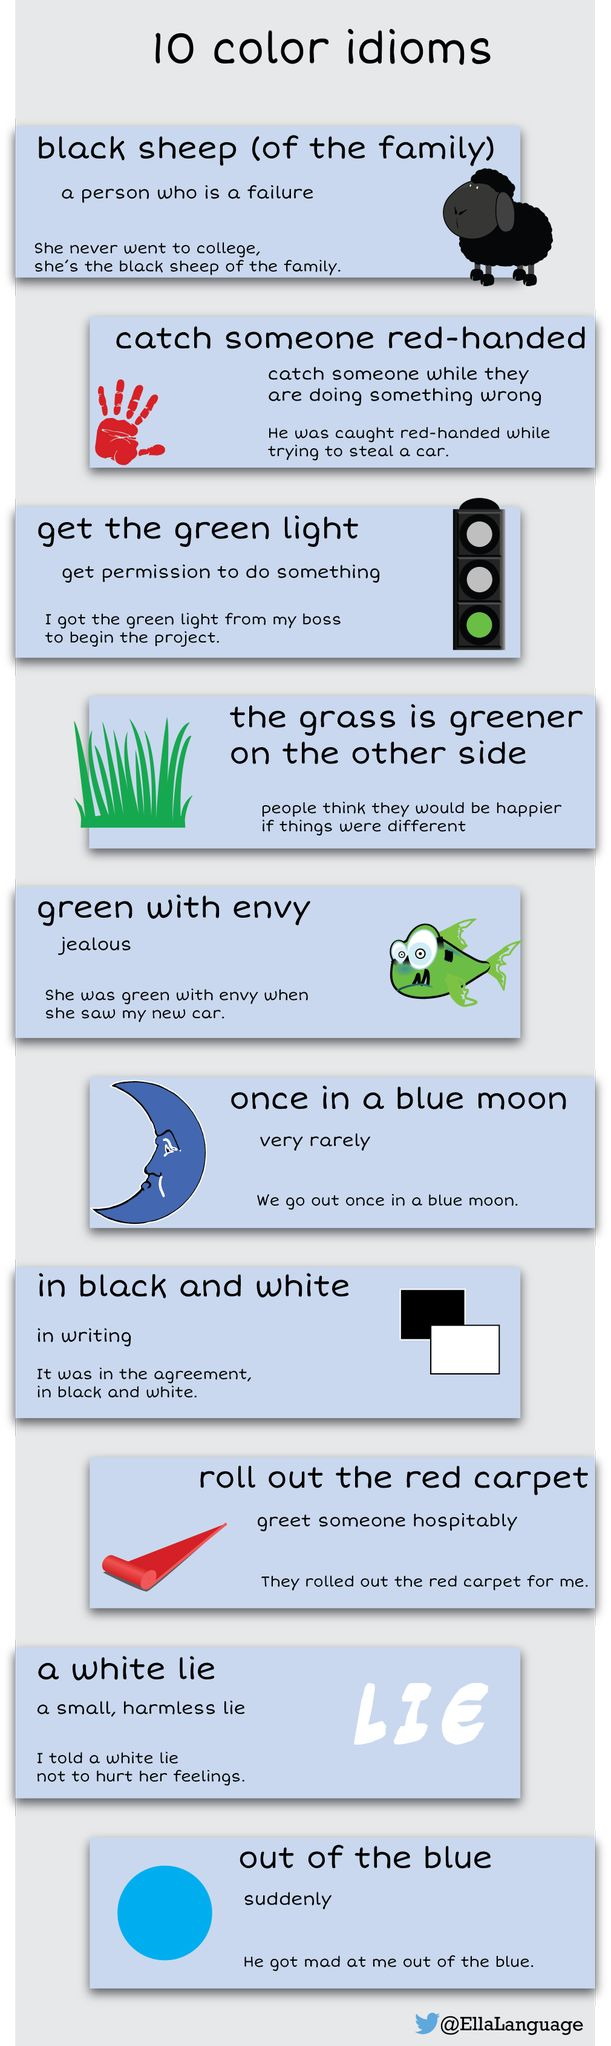 10 color idioms - great for #ESL and #ELL students